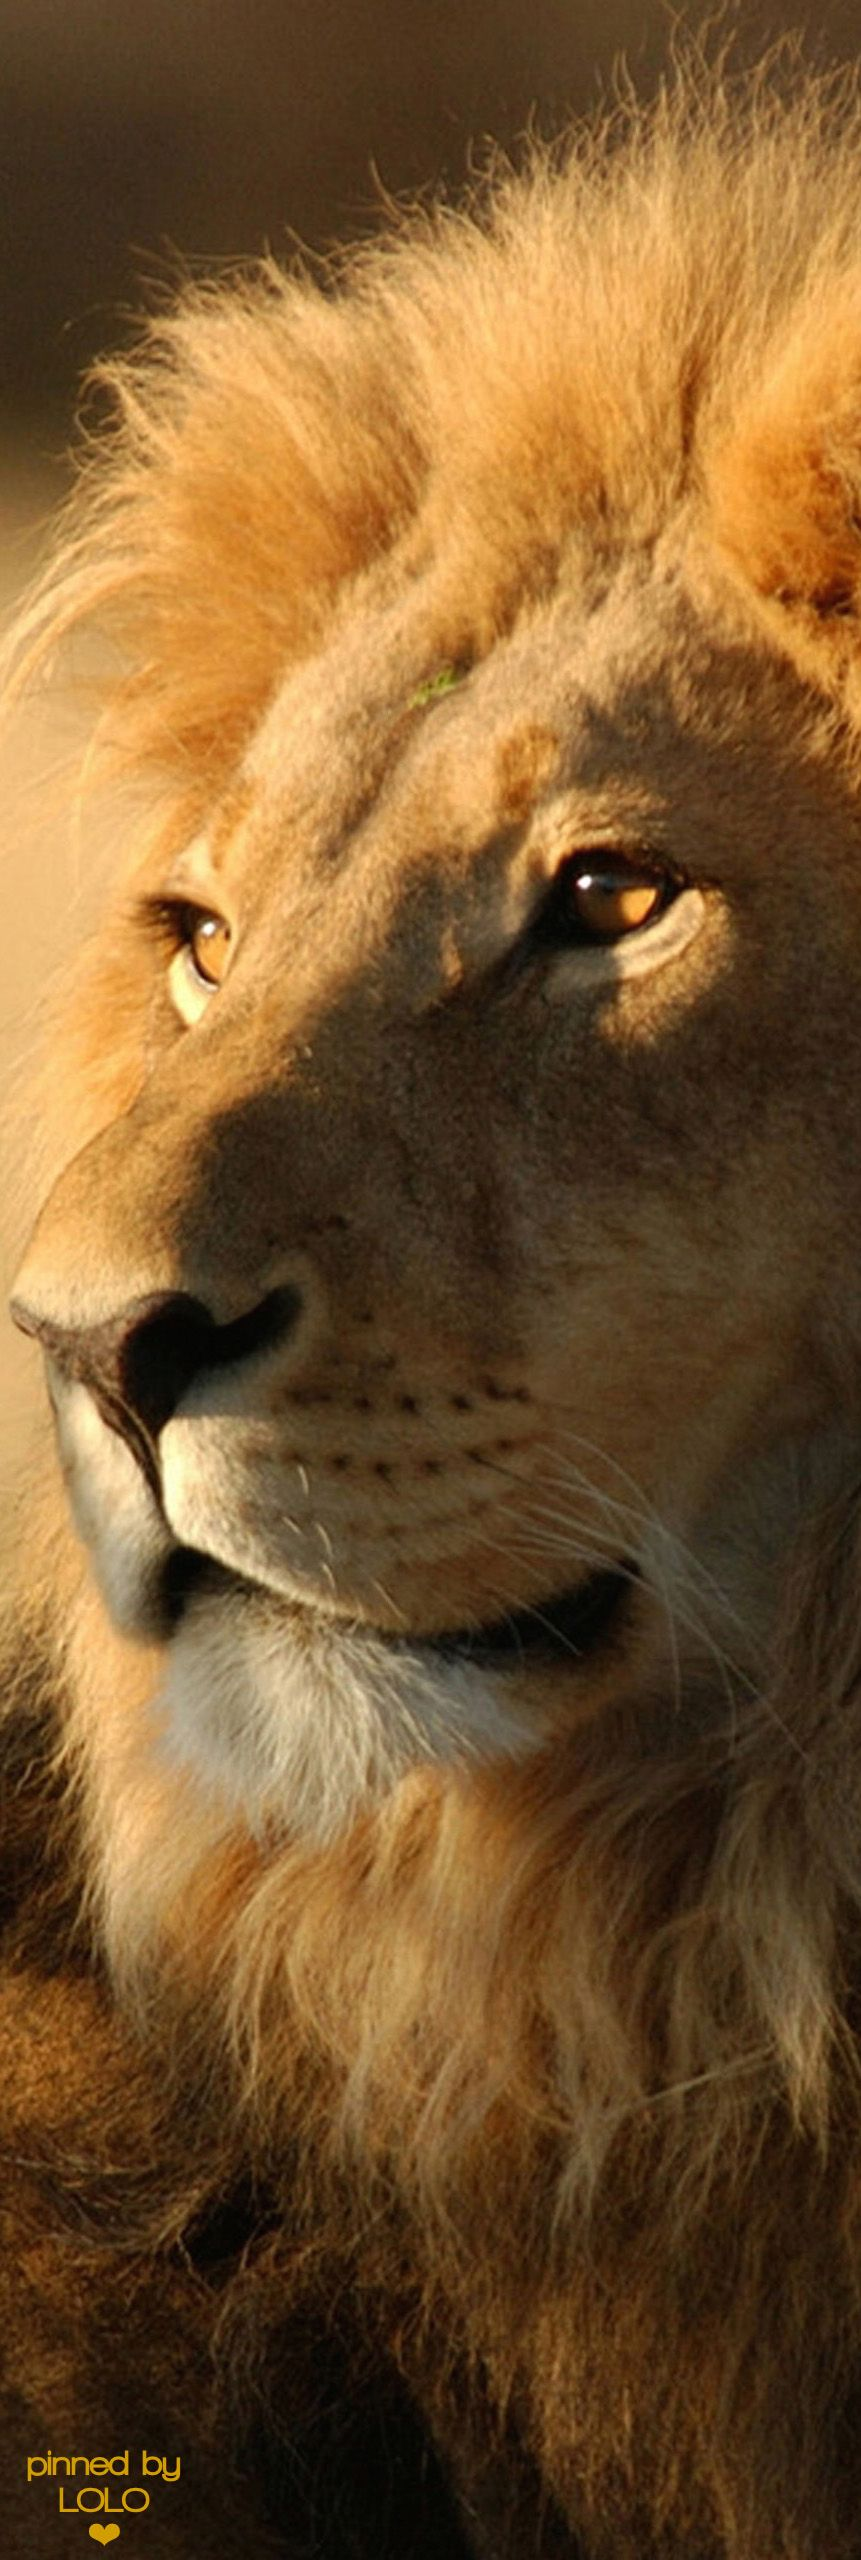 Subtle but this is the way I picture the lion looking face to face ...